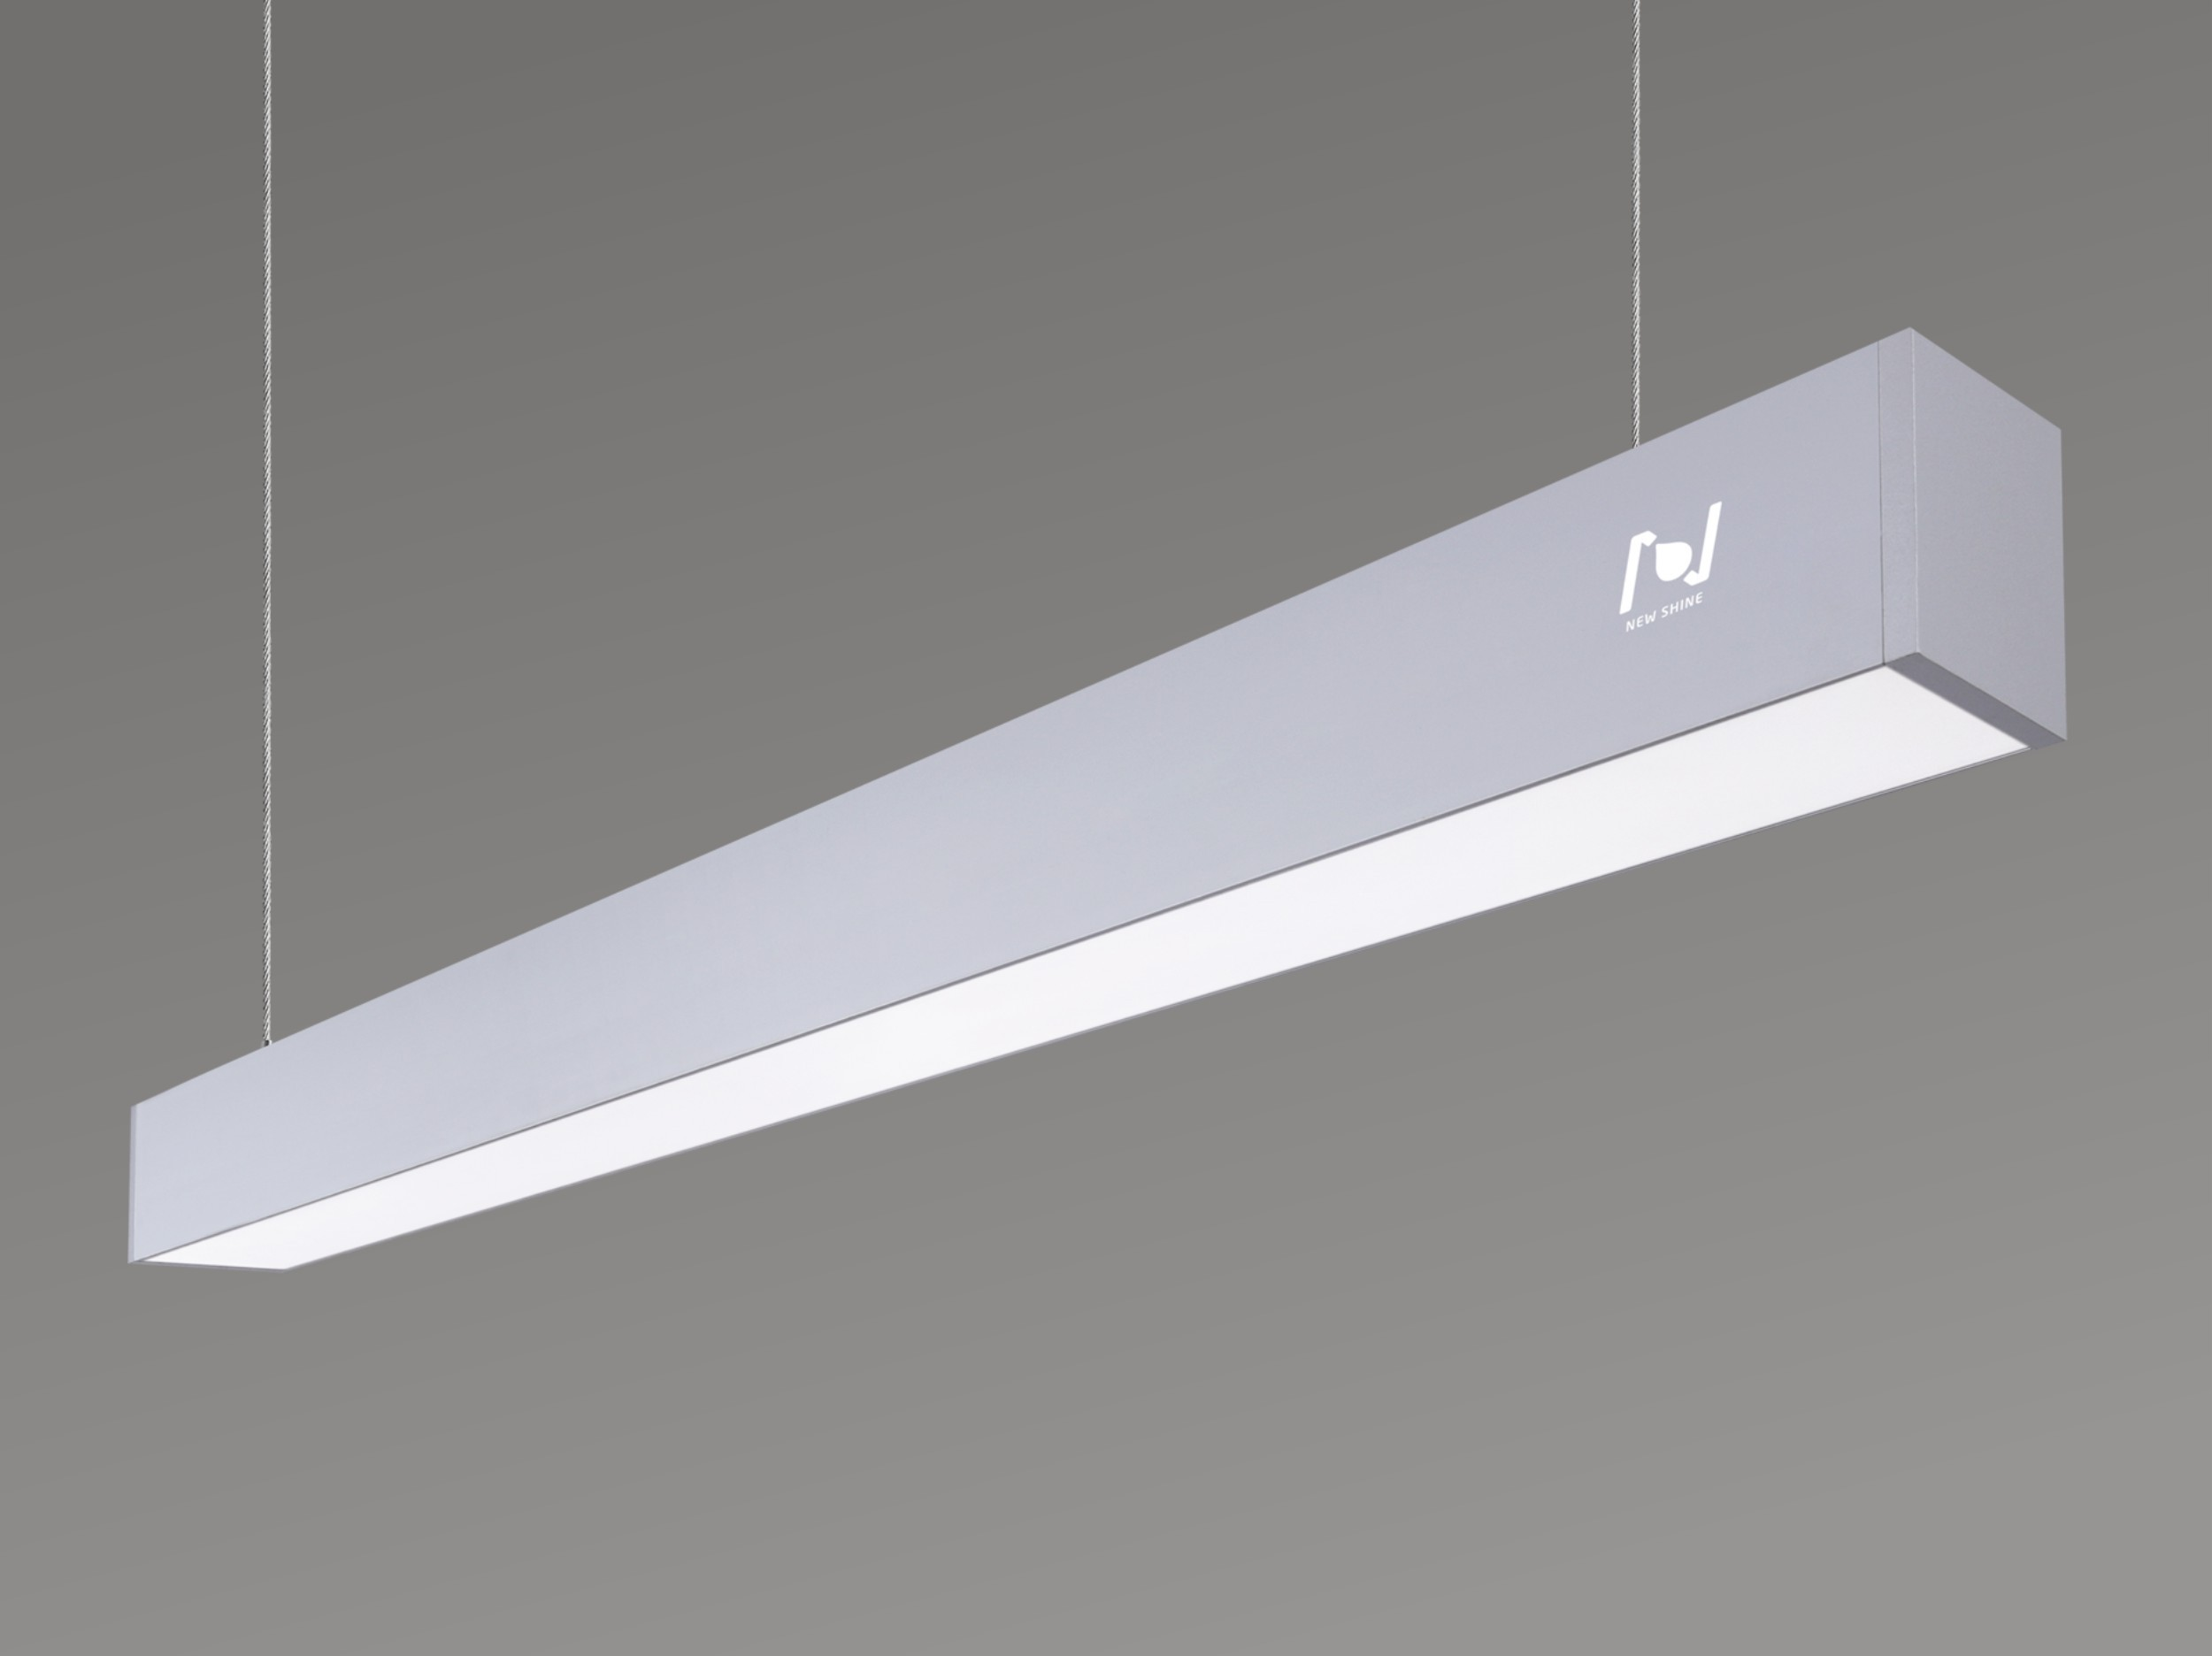 Commercial linear lighting solutions led linear light LL0129M-2400